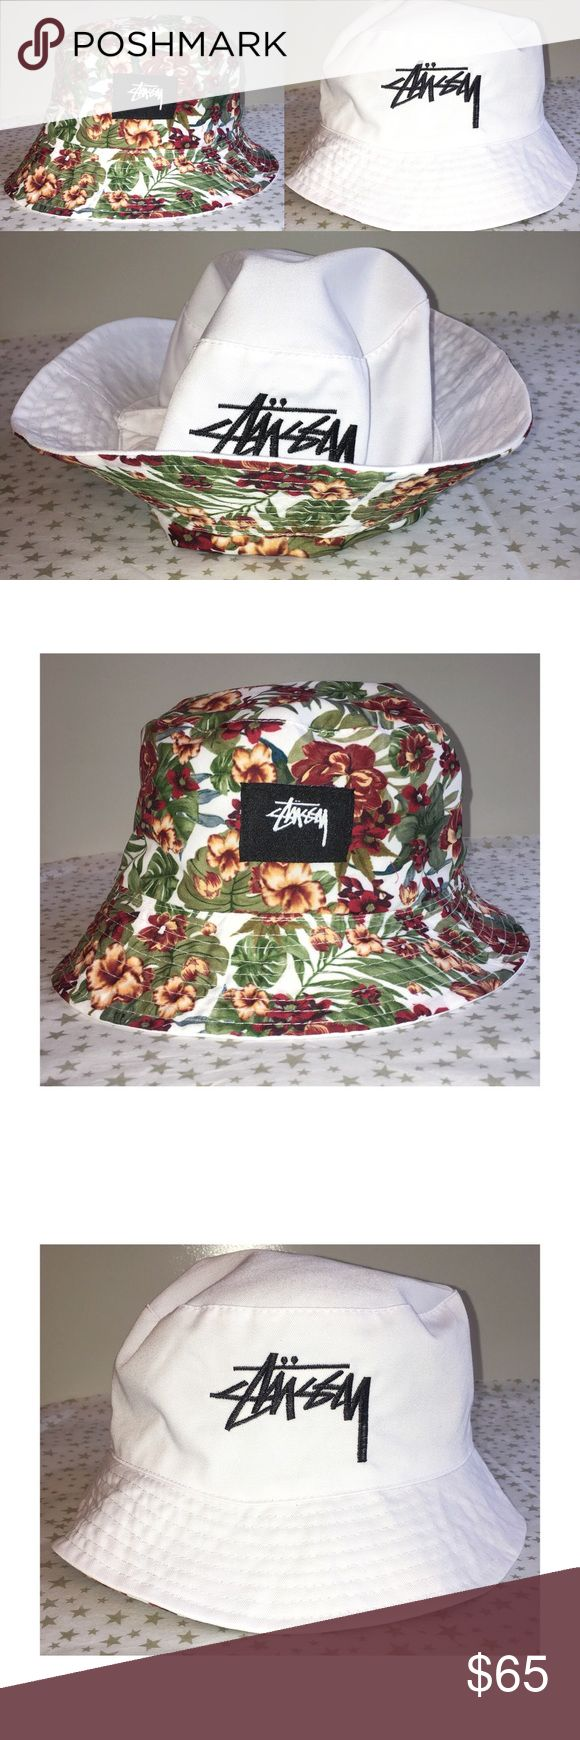 Reversible STUSSY Floral Bucket Hat 🔥 RARE These are limited edition and brand NWT! Never worn floral reversible bucket hats. You will not find these anywhere else, the Hats are really comfortable on both sides - really rare! I was lucky enough to get 4 of these 😊 Stussy Accessories Hats